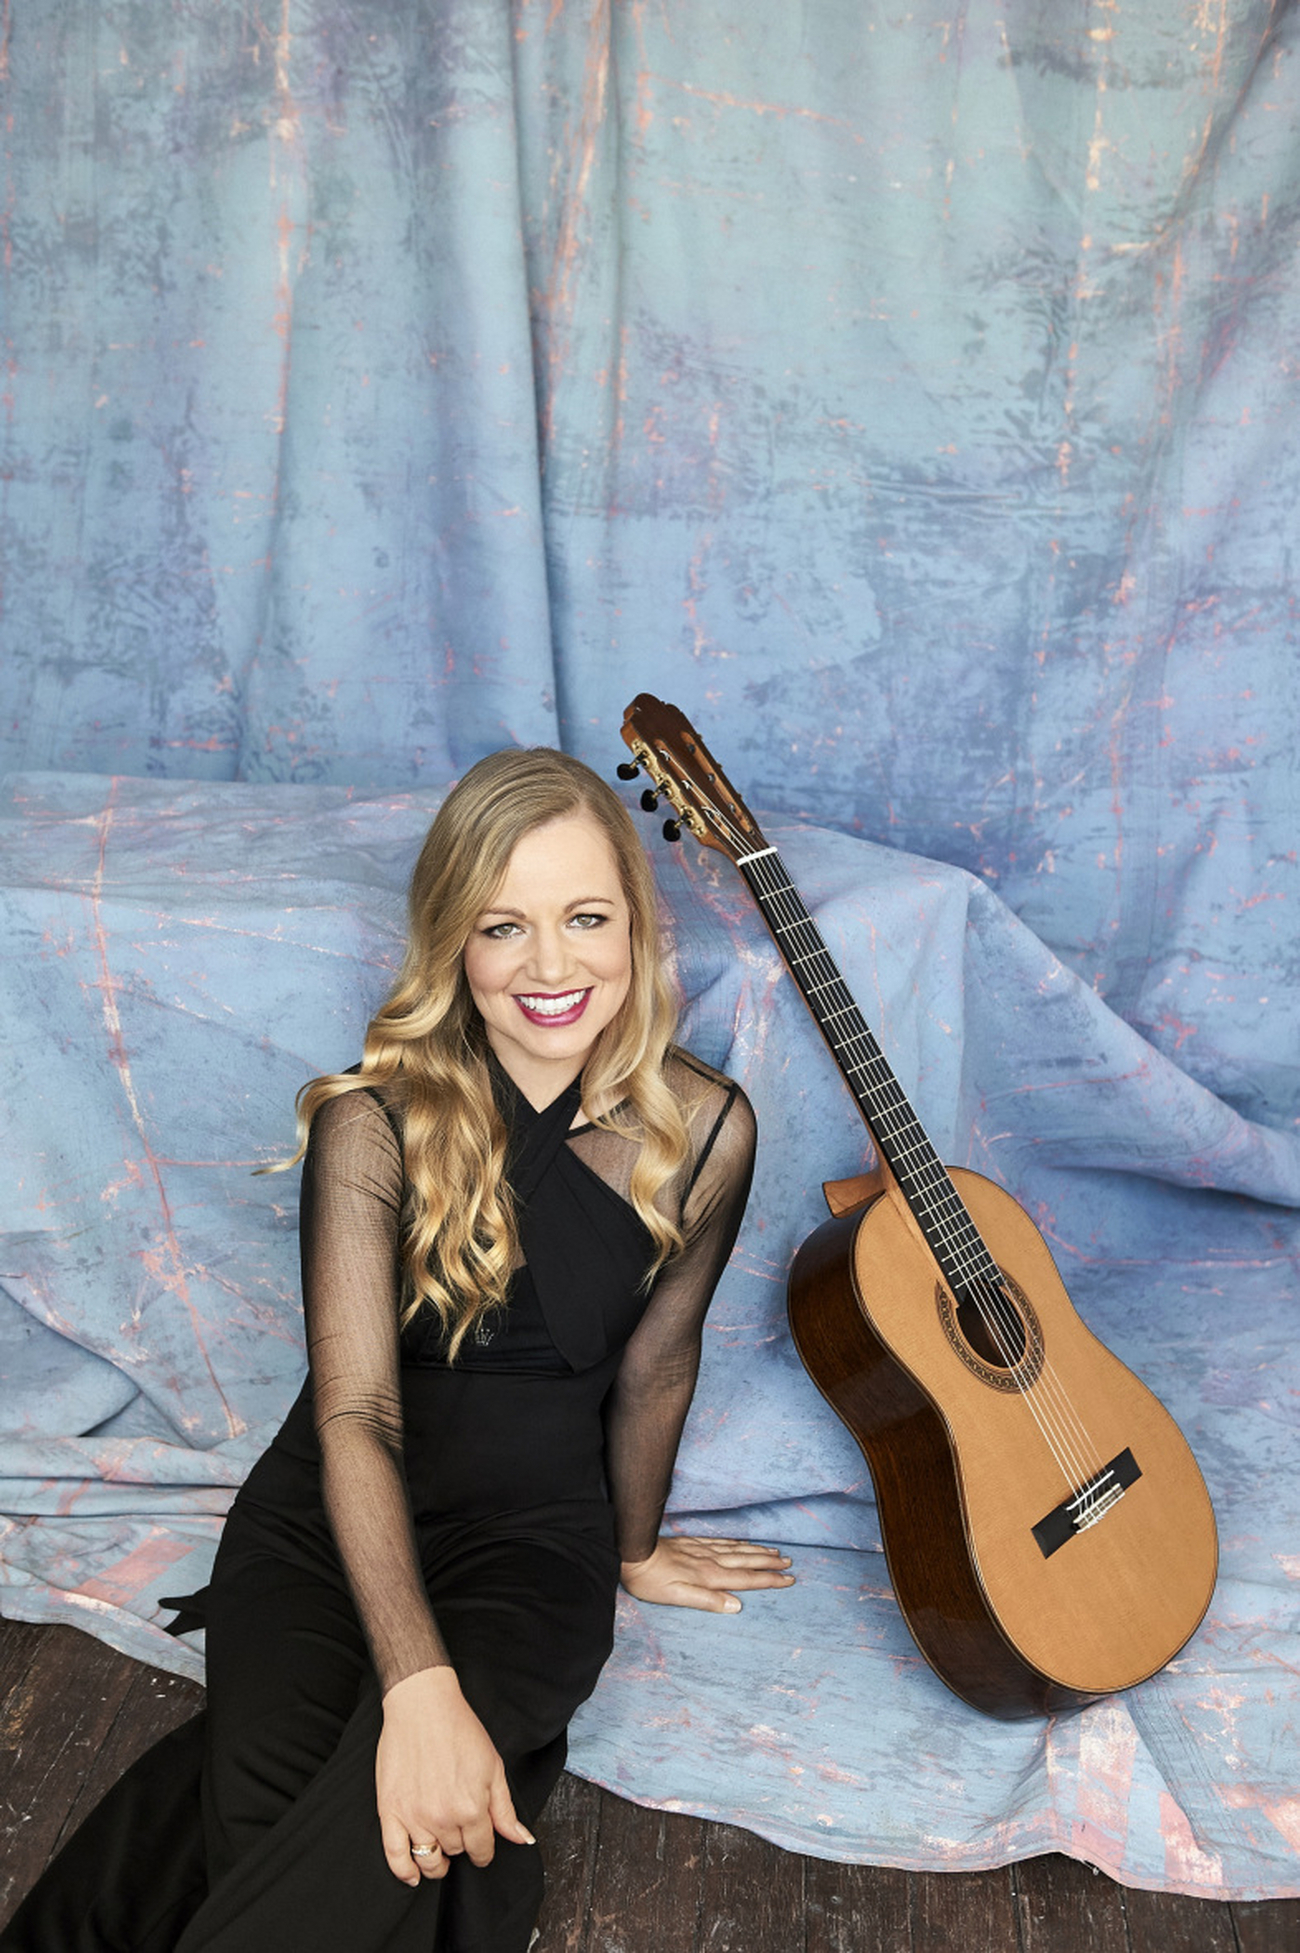 BWW Review: ADELAIDE INTERNATIONAL GUITAR FESTIVAL 2019 - KARIN SCHAUPP AND MILES JOHNSTON at Space Theatre, Adelaide Festival Centre